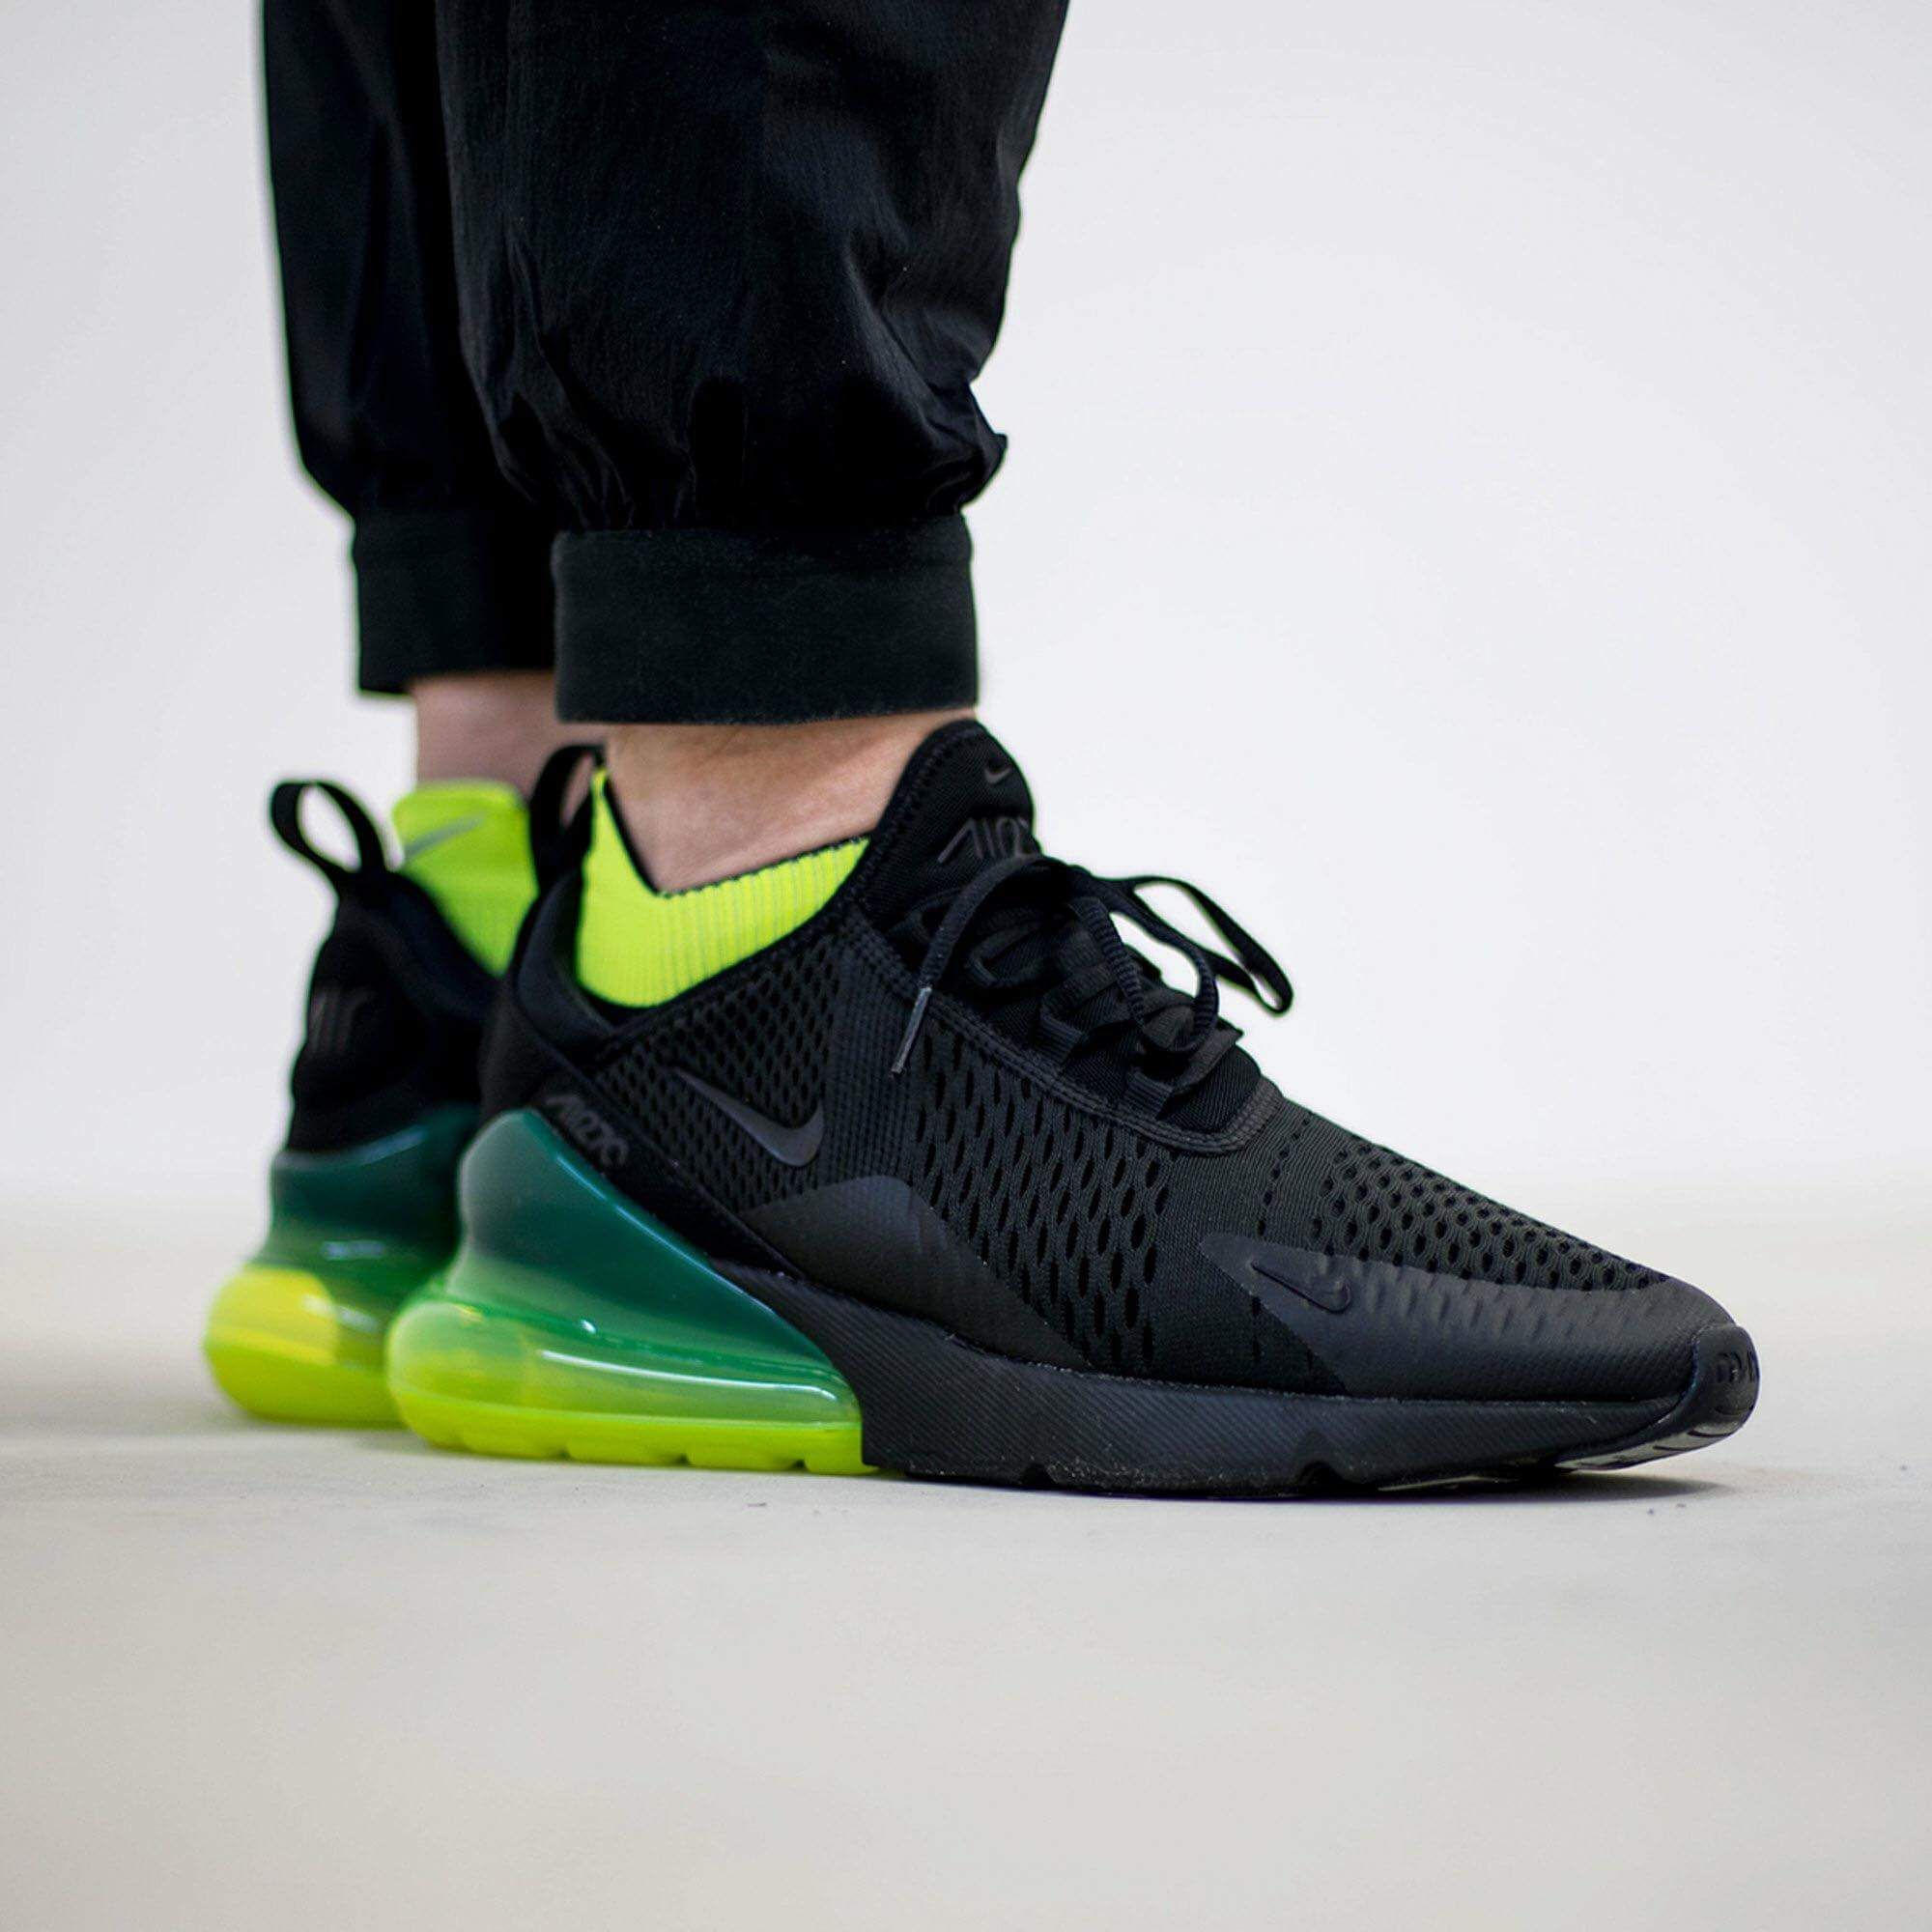 newest collection e2b40 9a11b NIKE AIR MAX 270 NEON GREEN BLACK VOLT TRAINER AH8050 011 ...